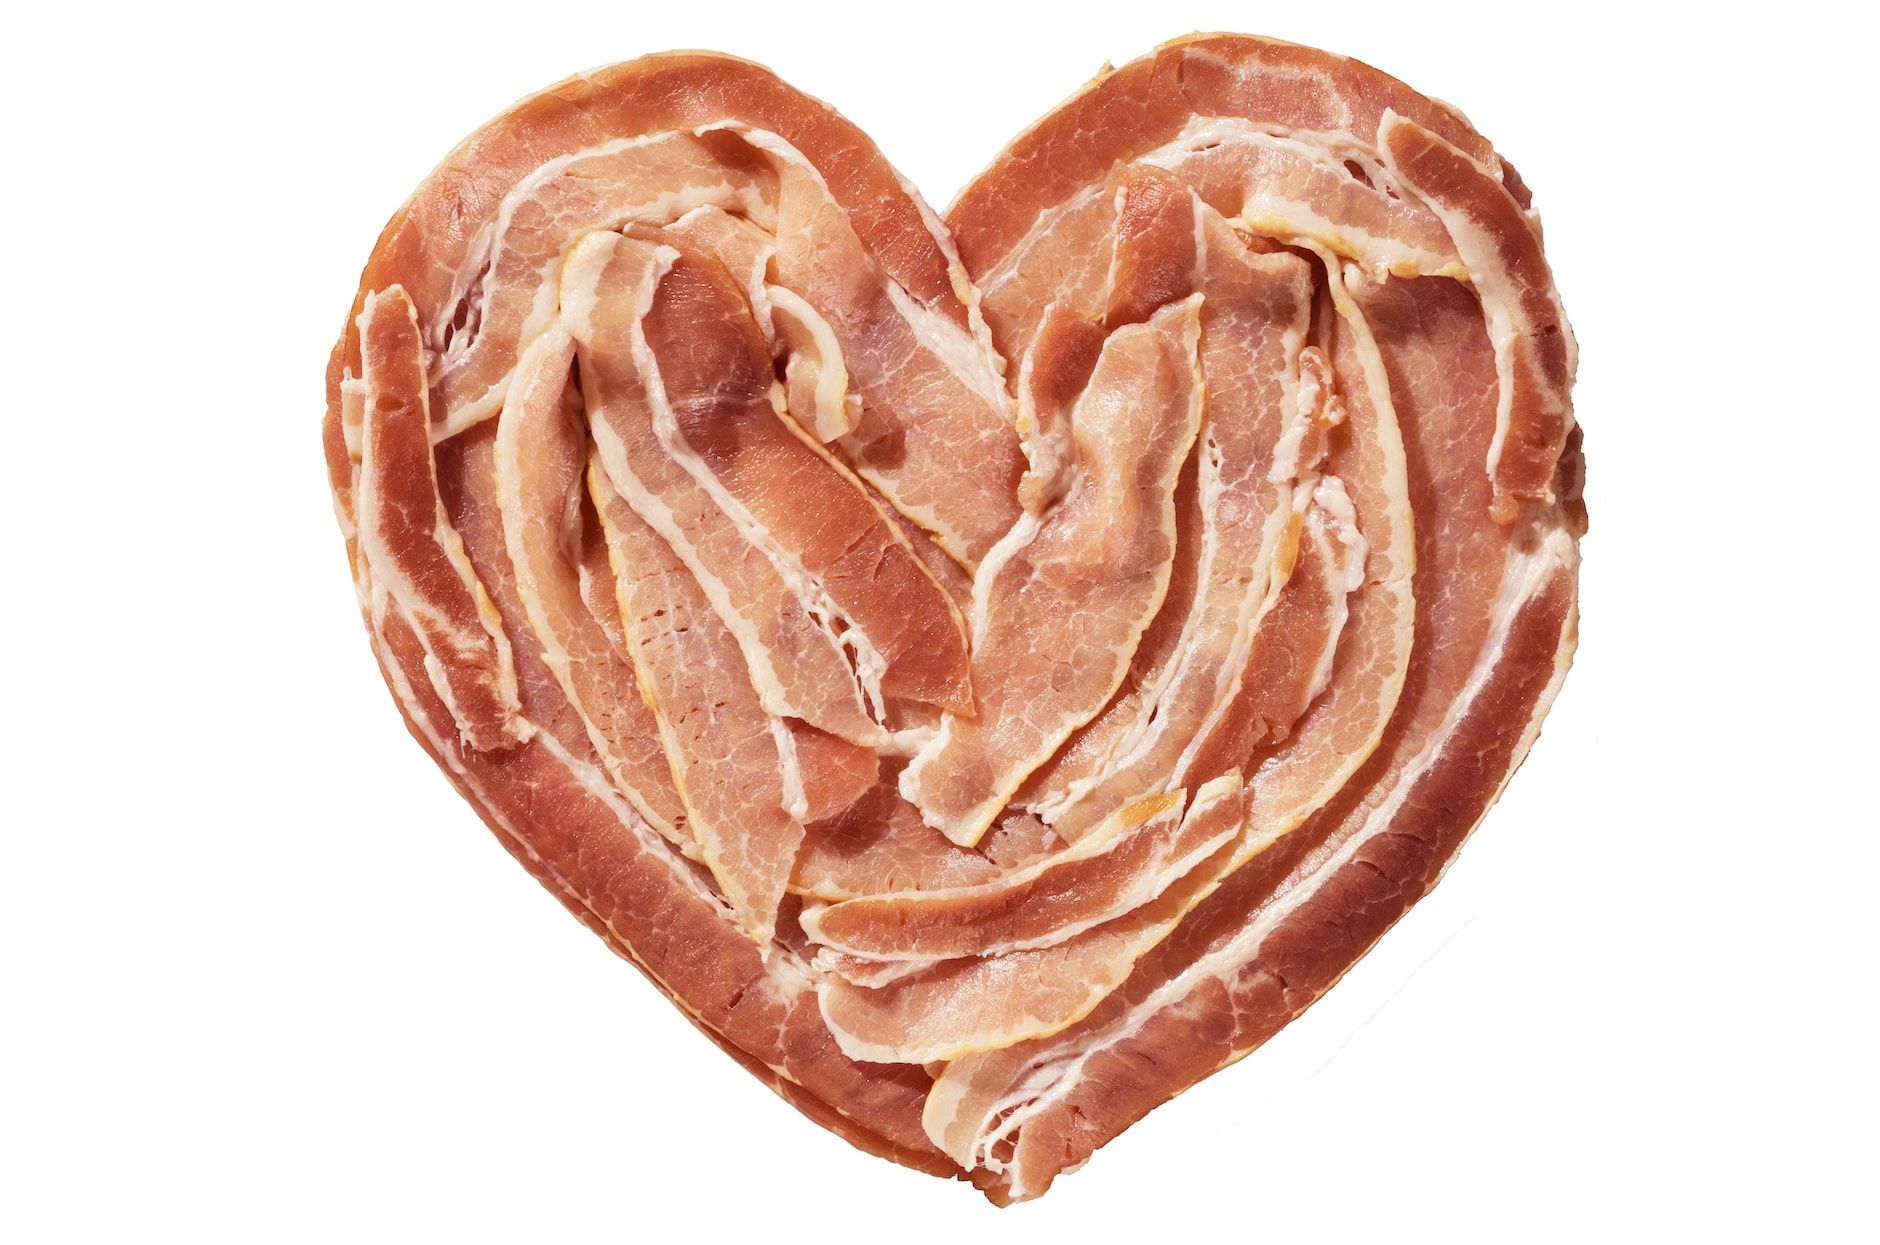 raw bacon heart isolated on a white background